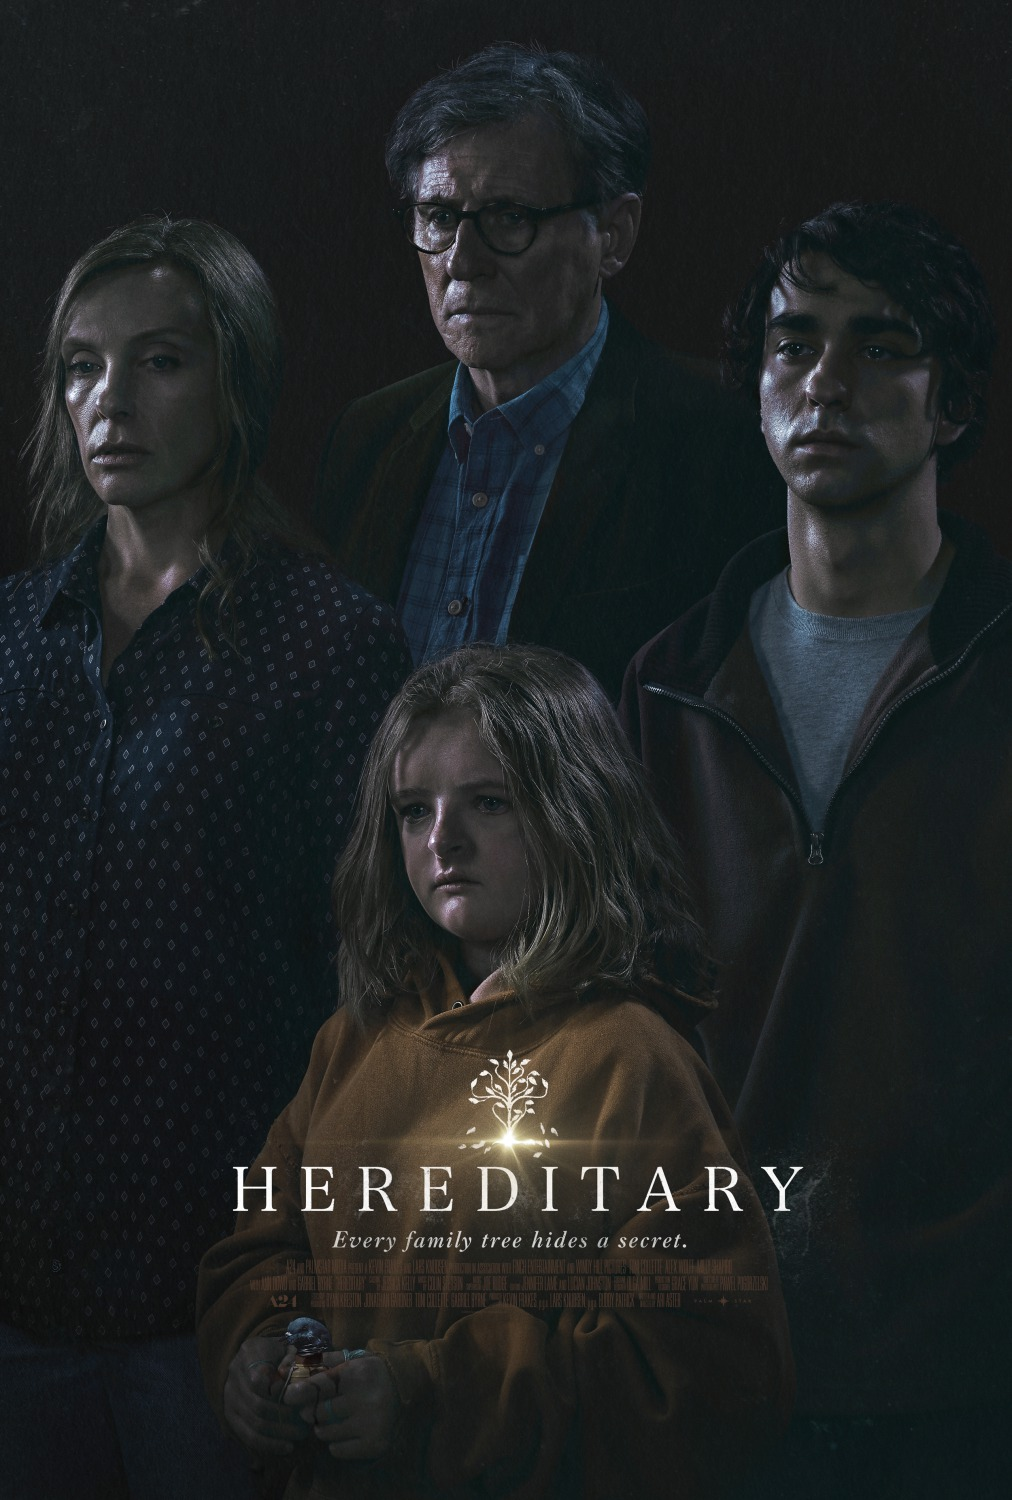 Hereditary film review: Toni Collette stuns in terrifying and deeply upsetting horror